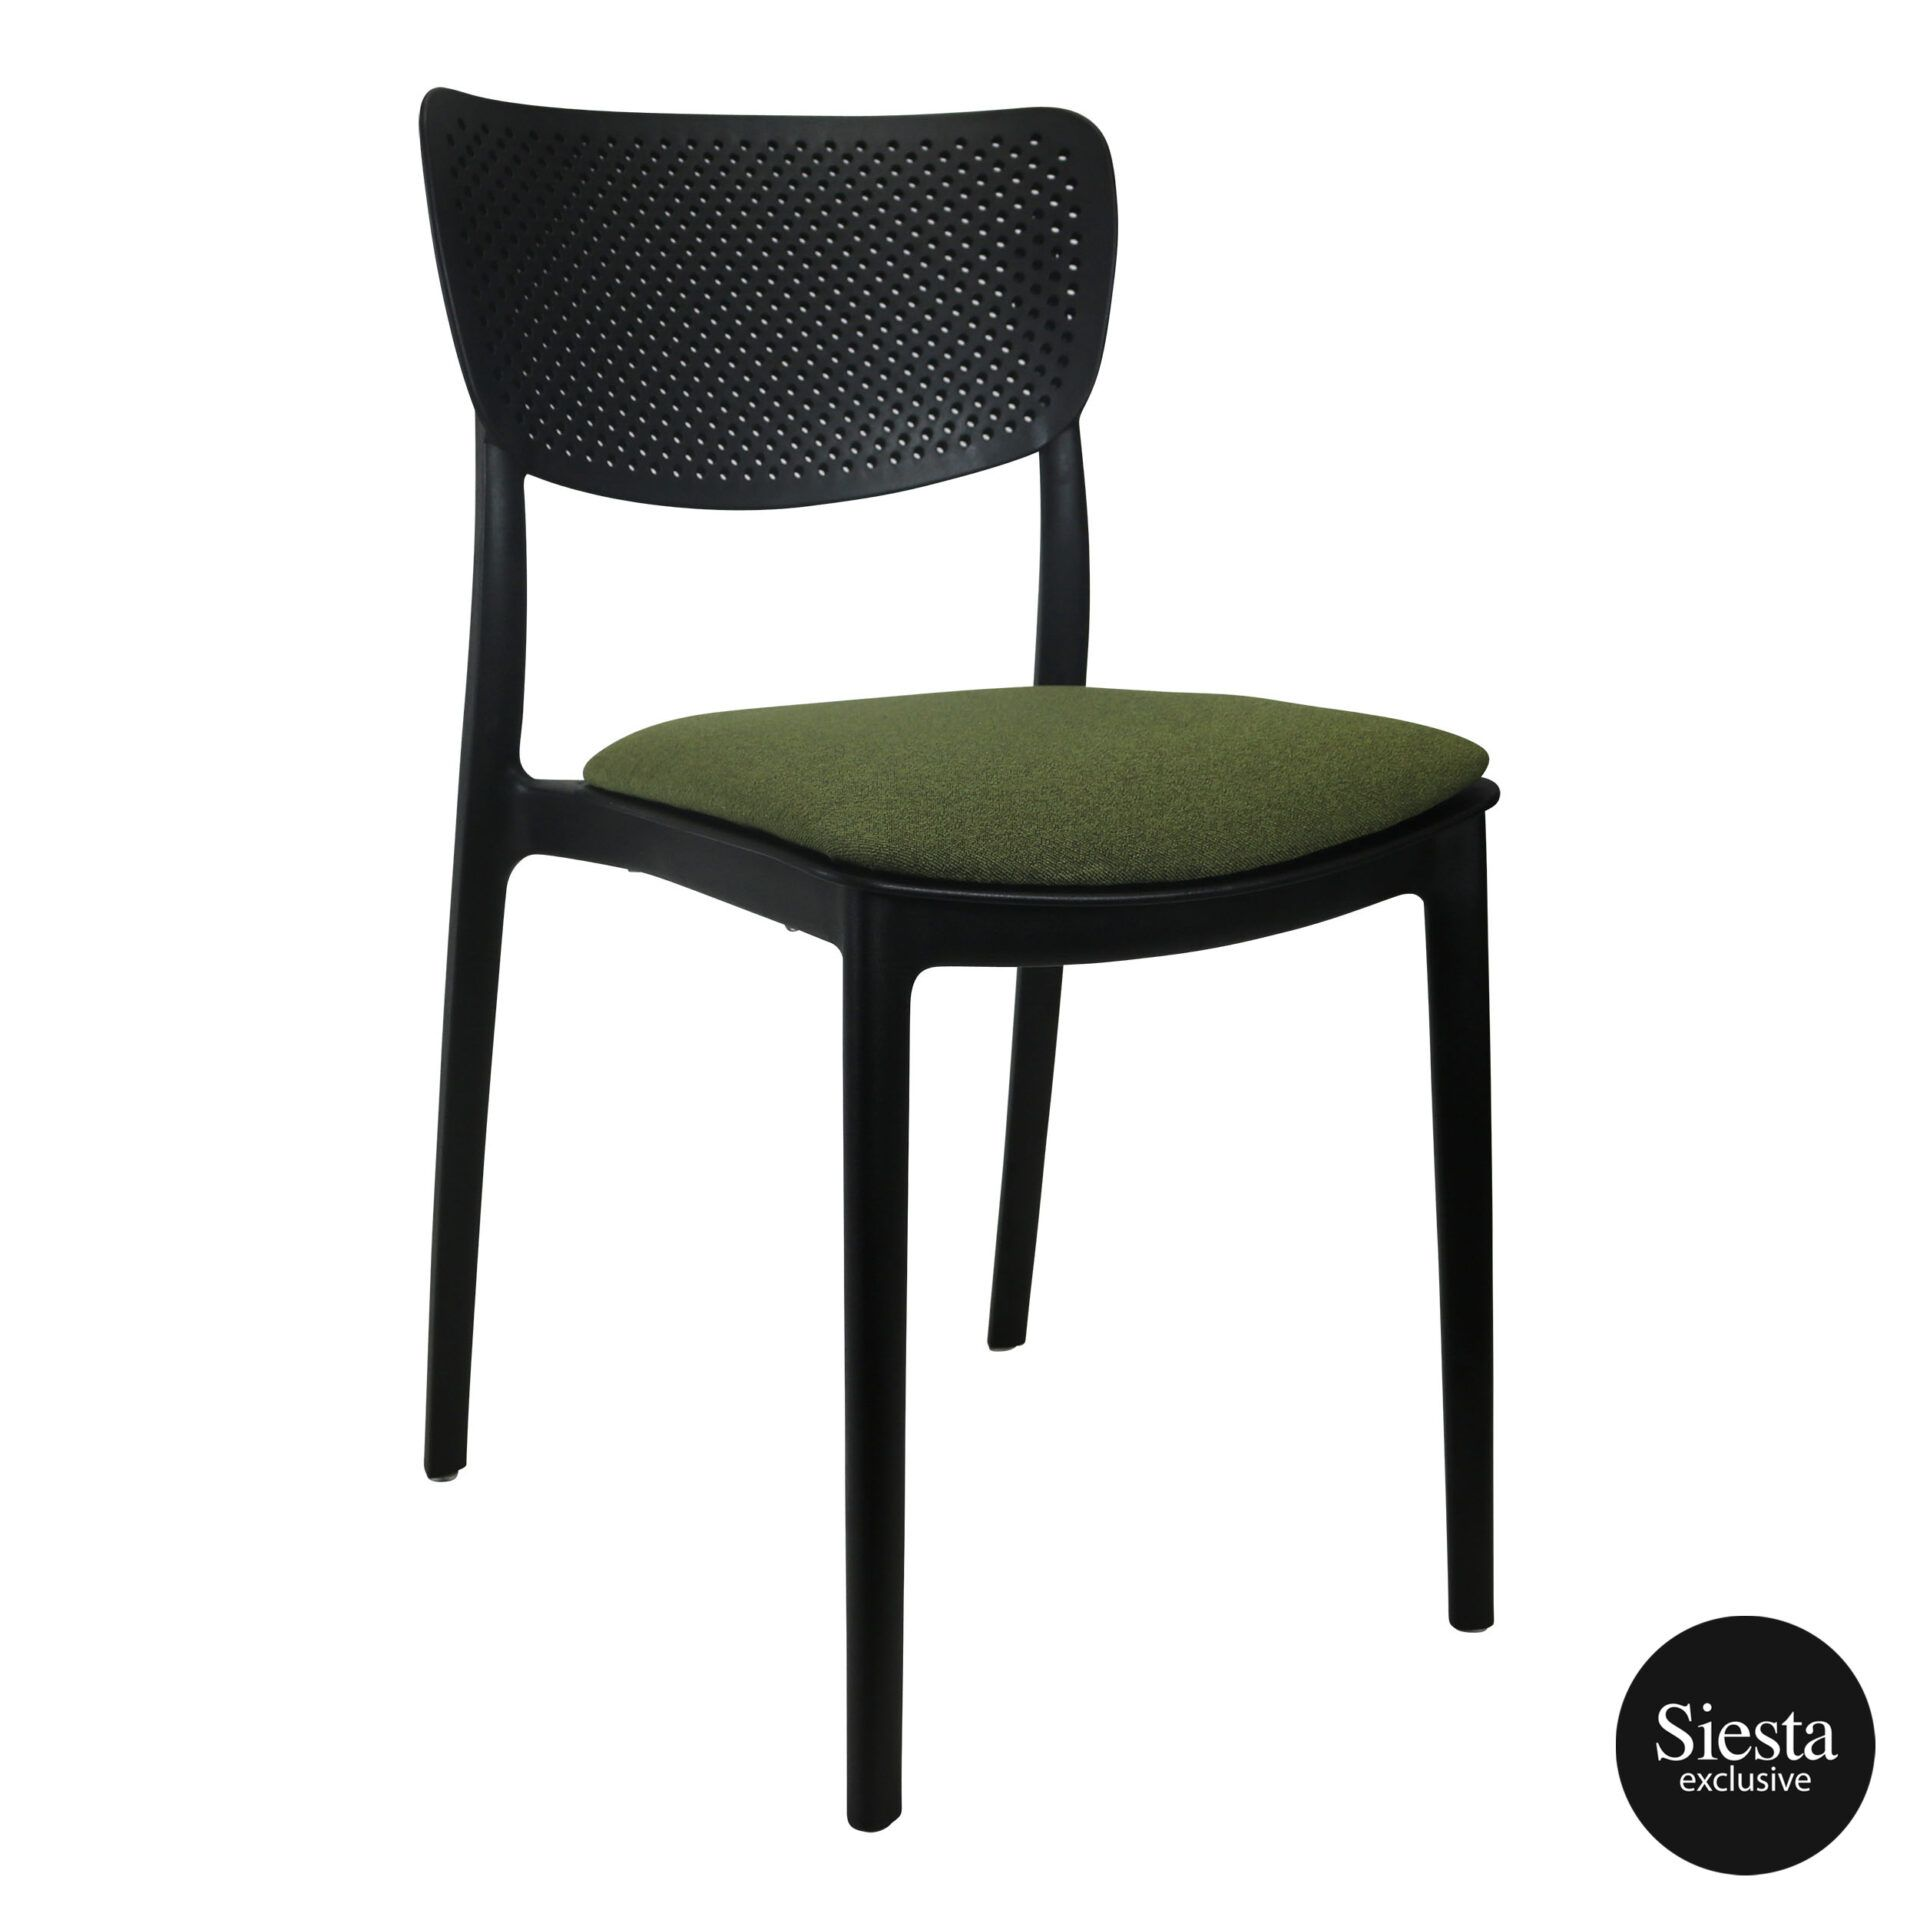 lucy chair black c4a